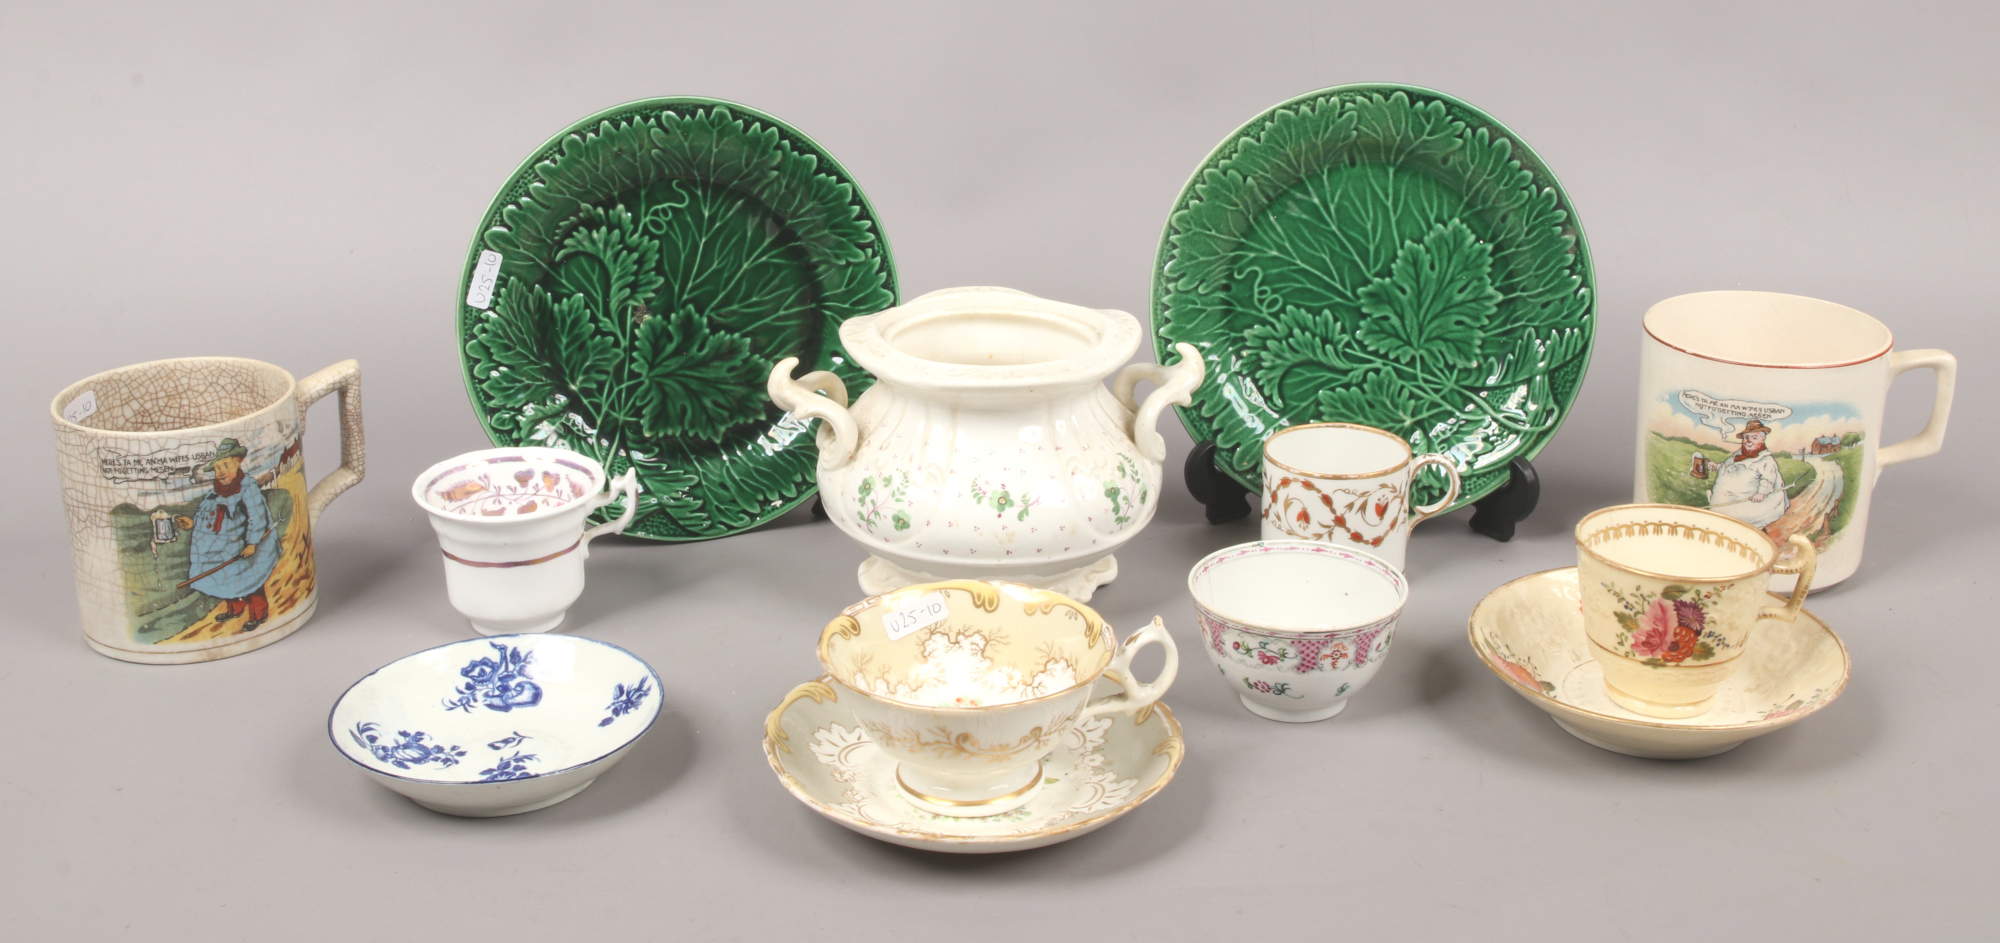 Lot 1 - A quantity of mostly antique porcelain and pottery including 18th century Worcester saucer, leaf